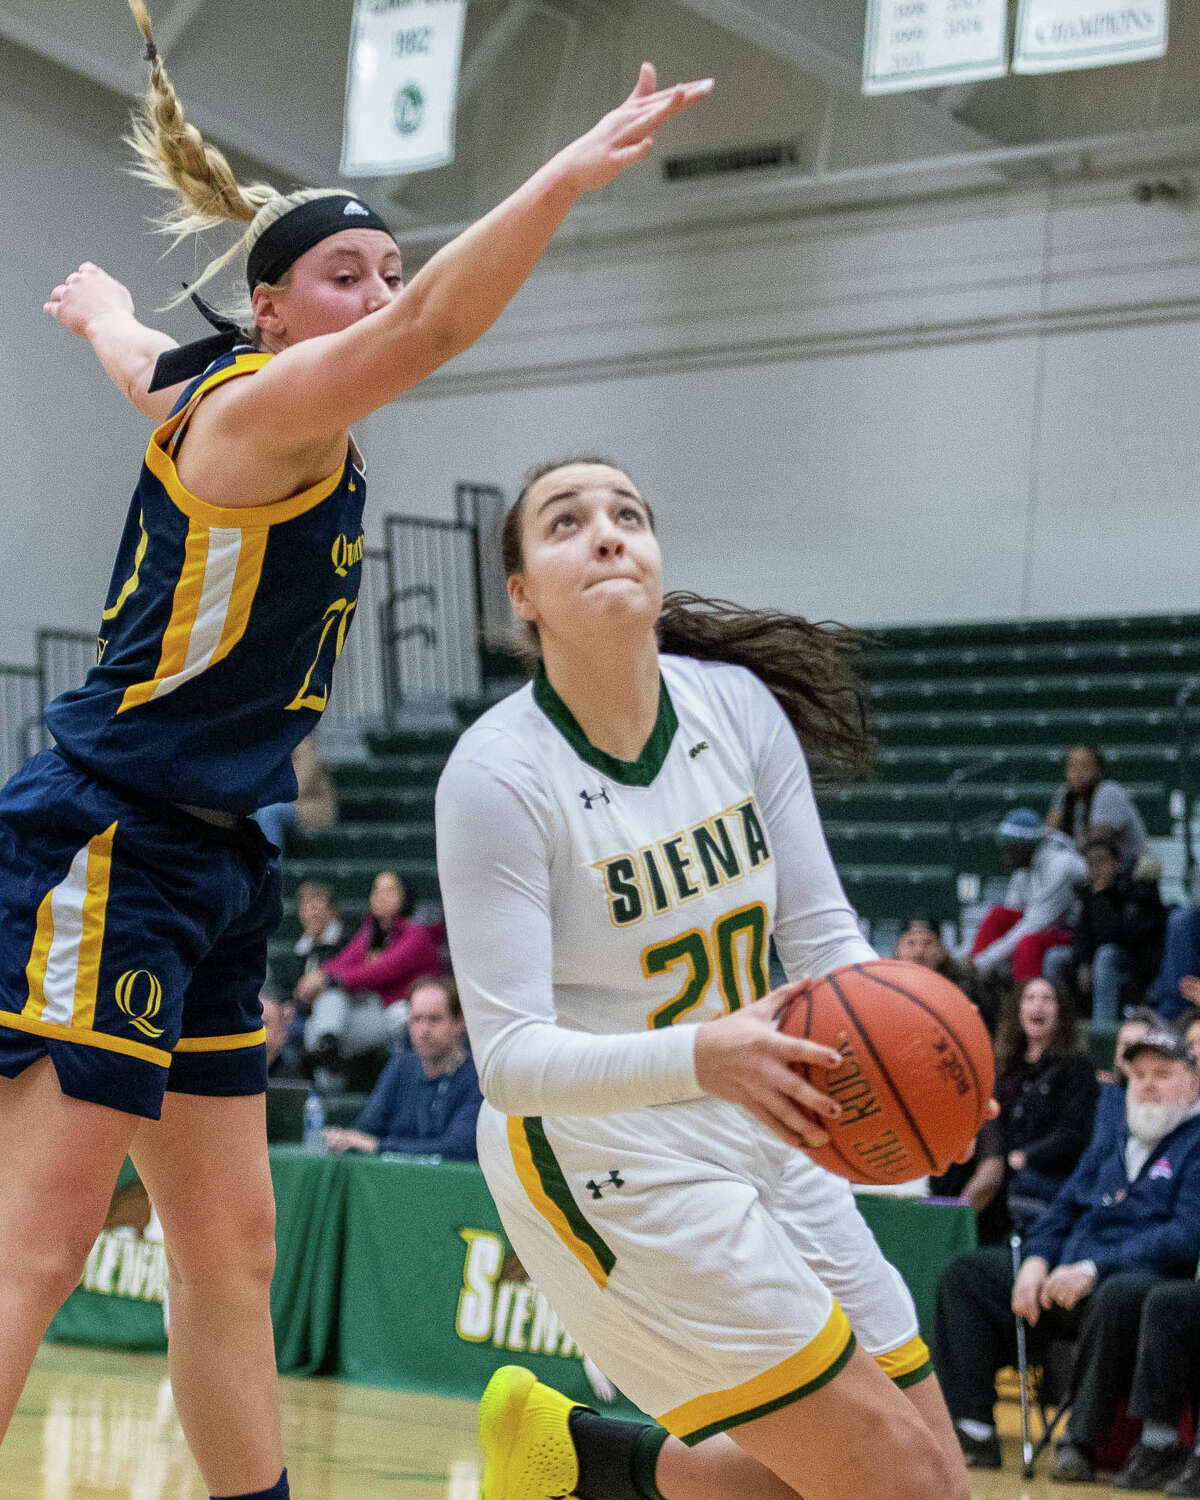 Siena College sophomore Margo Peterson drives to the basket underneath Quinnipiac University senior Paige Warfel at the Siena College Alumni Recreation Center in Colonie, NY on Saturday, Jan. 4, 2020 (Jim Franco/Special to the Times Union.)